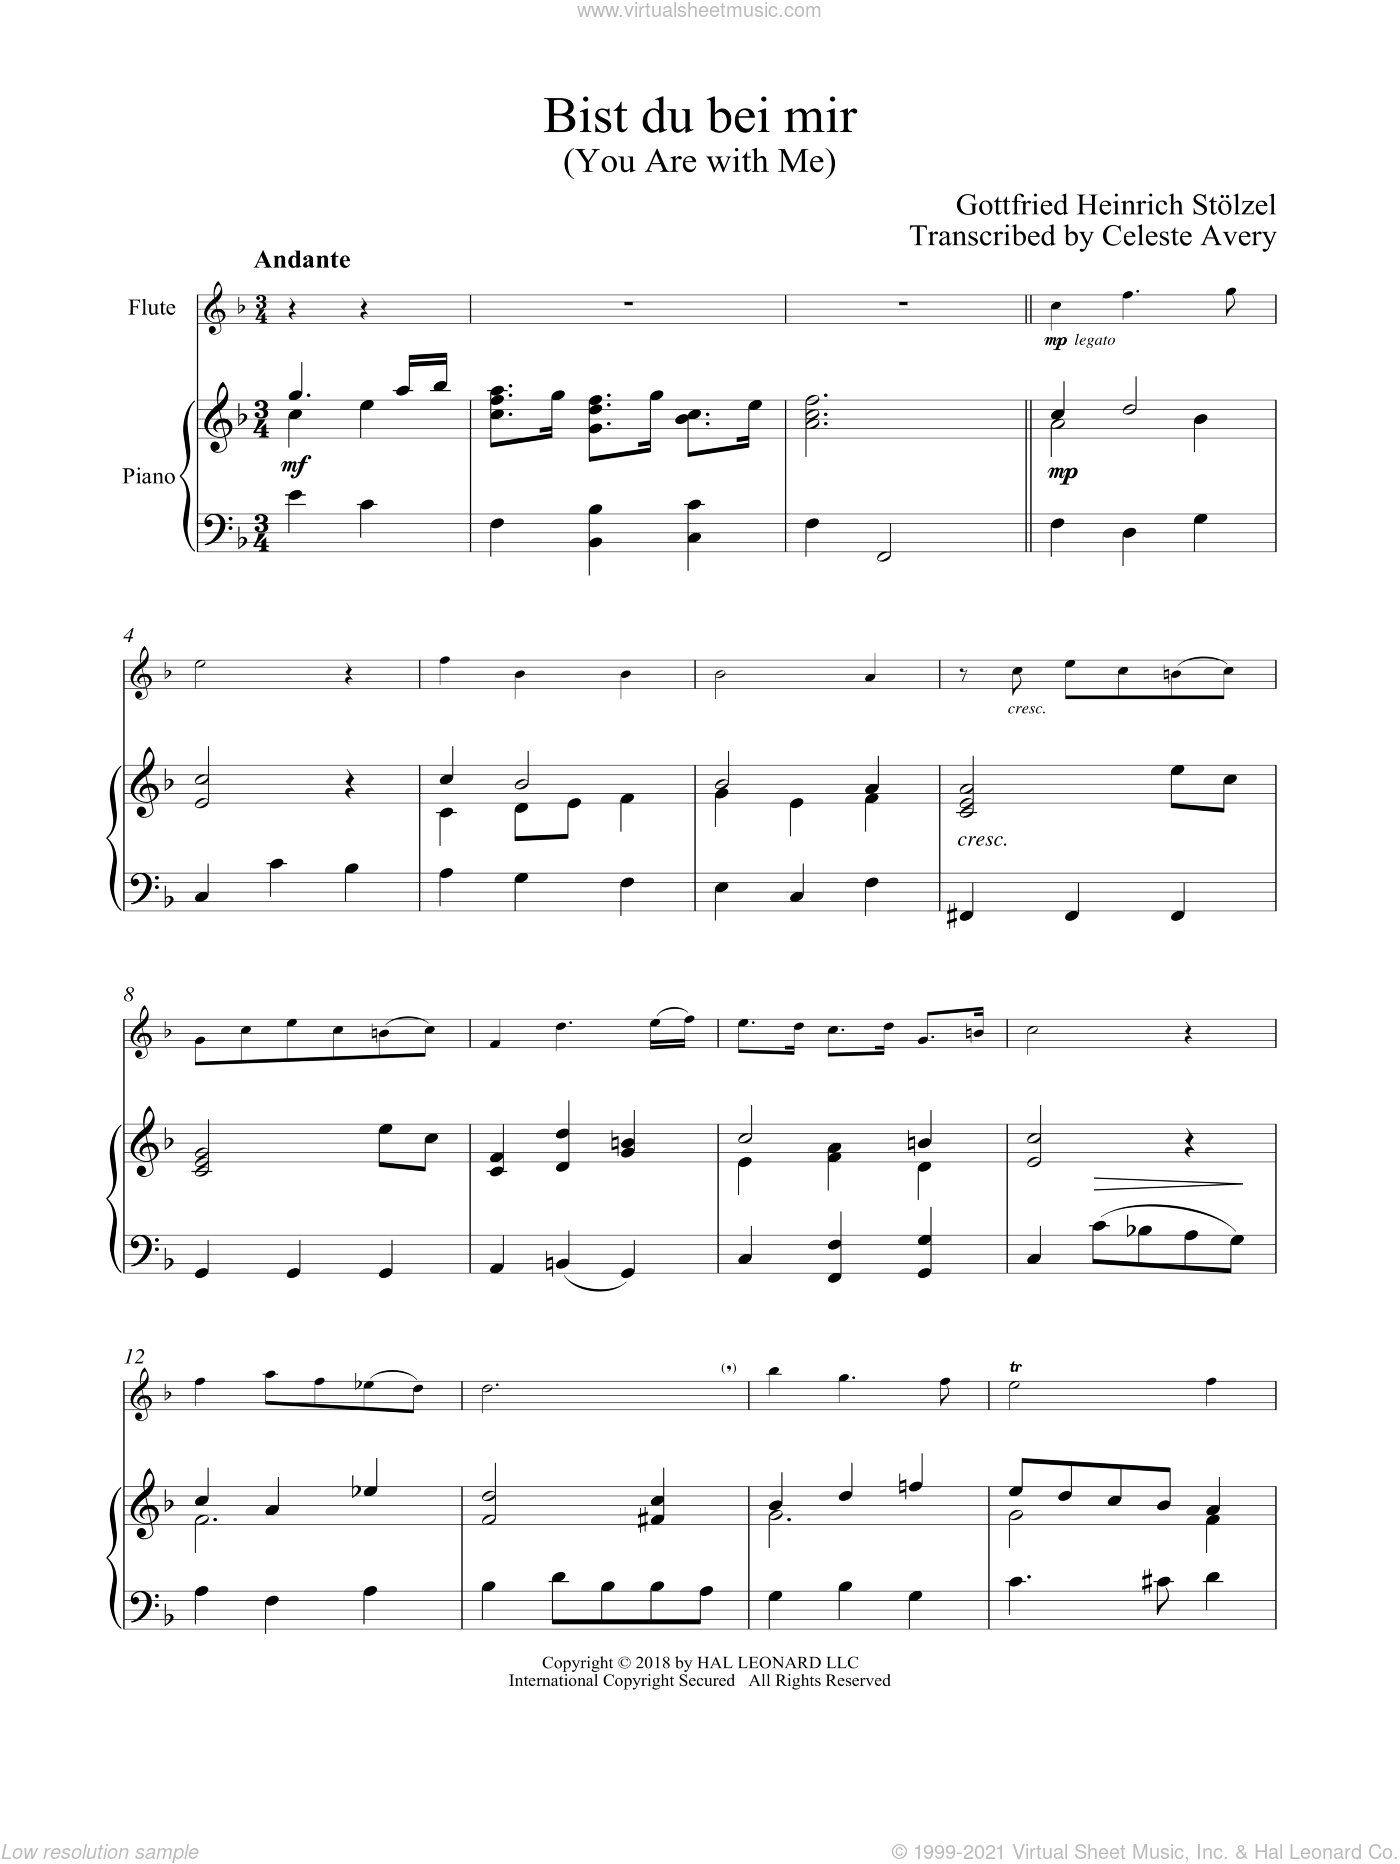 Bist du bei mir (You Are With Me) sheet music for flute and piano by Johann Sebastian Bach, classical wedding score, intermediate skill level